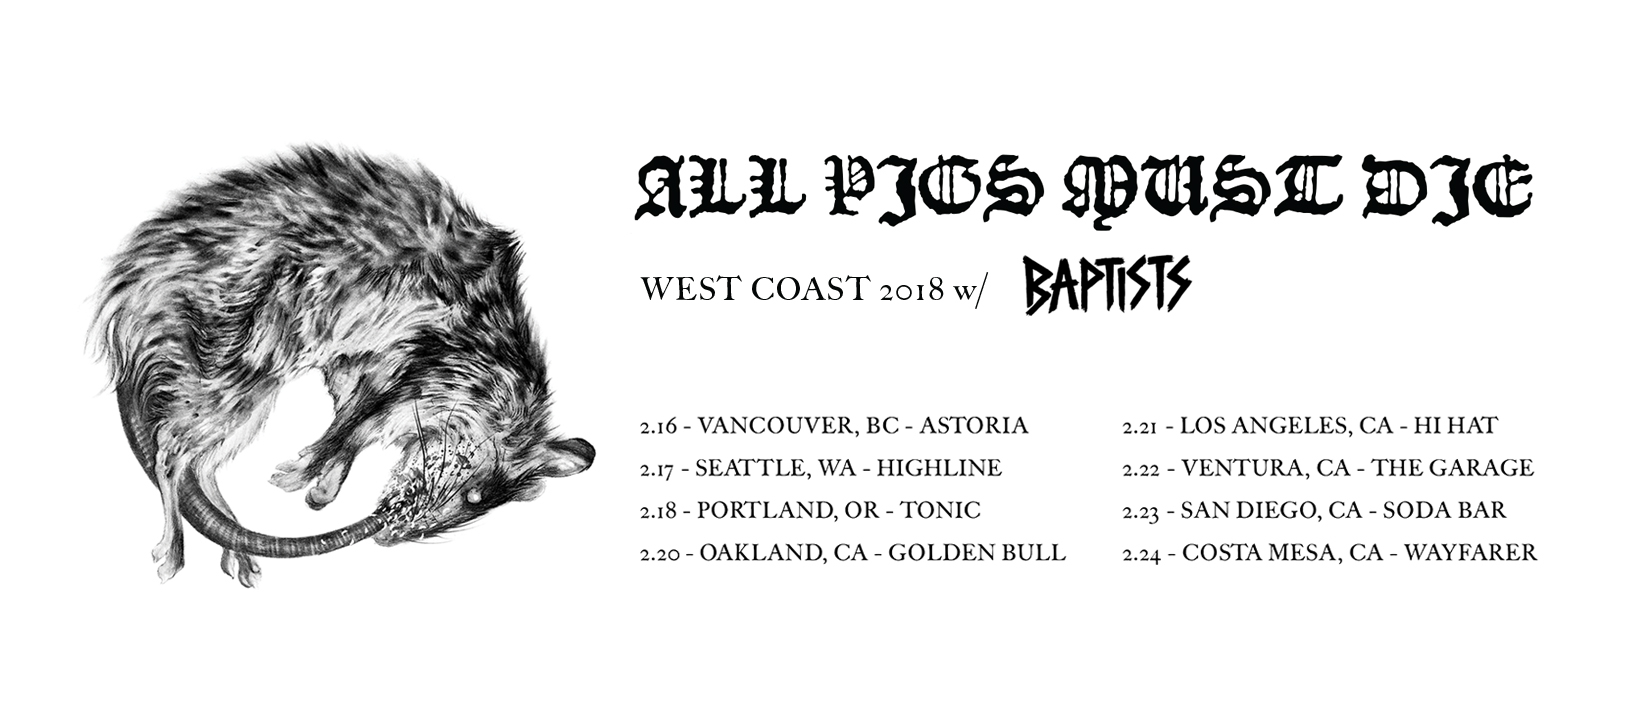 apmd baptists us west coast 2018 tour poster